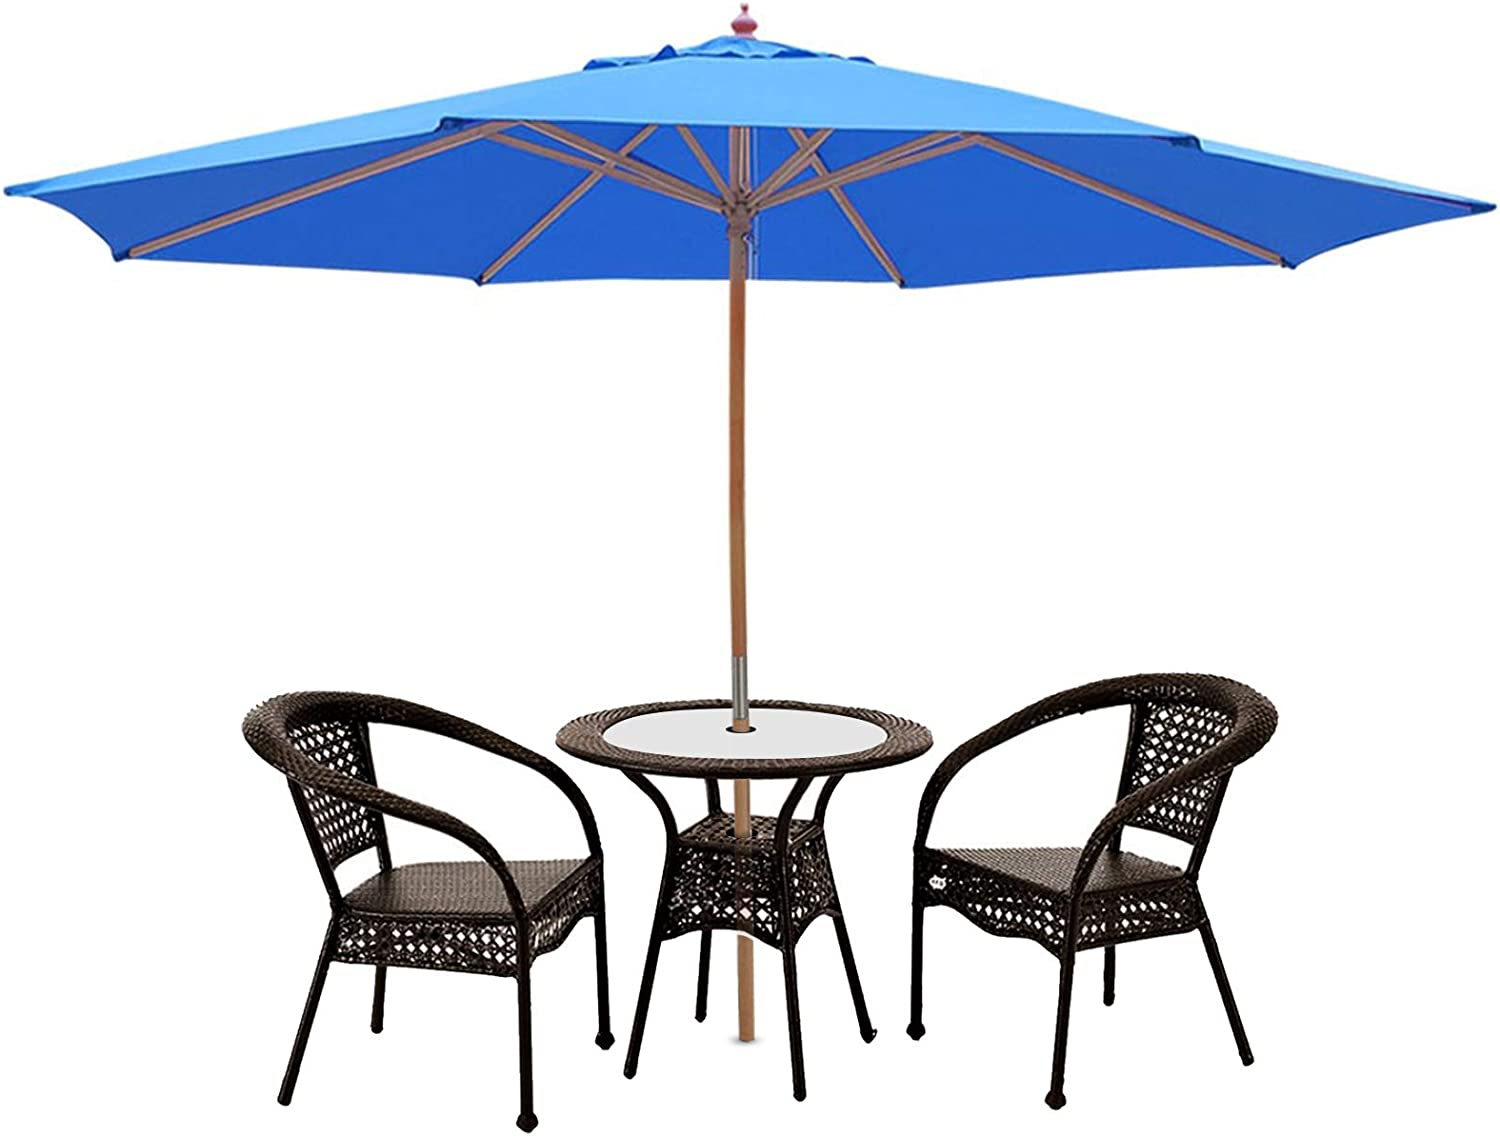 13ft XL Outdoor Patio Umbrella w Beach German Ya Cheap mail All items in the store order specialty store Wood Pole Beech